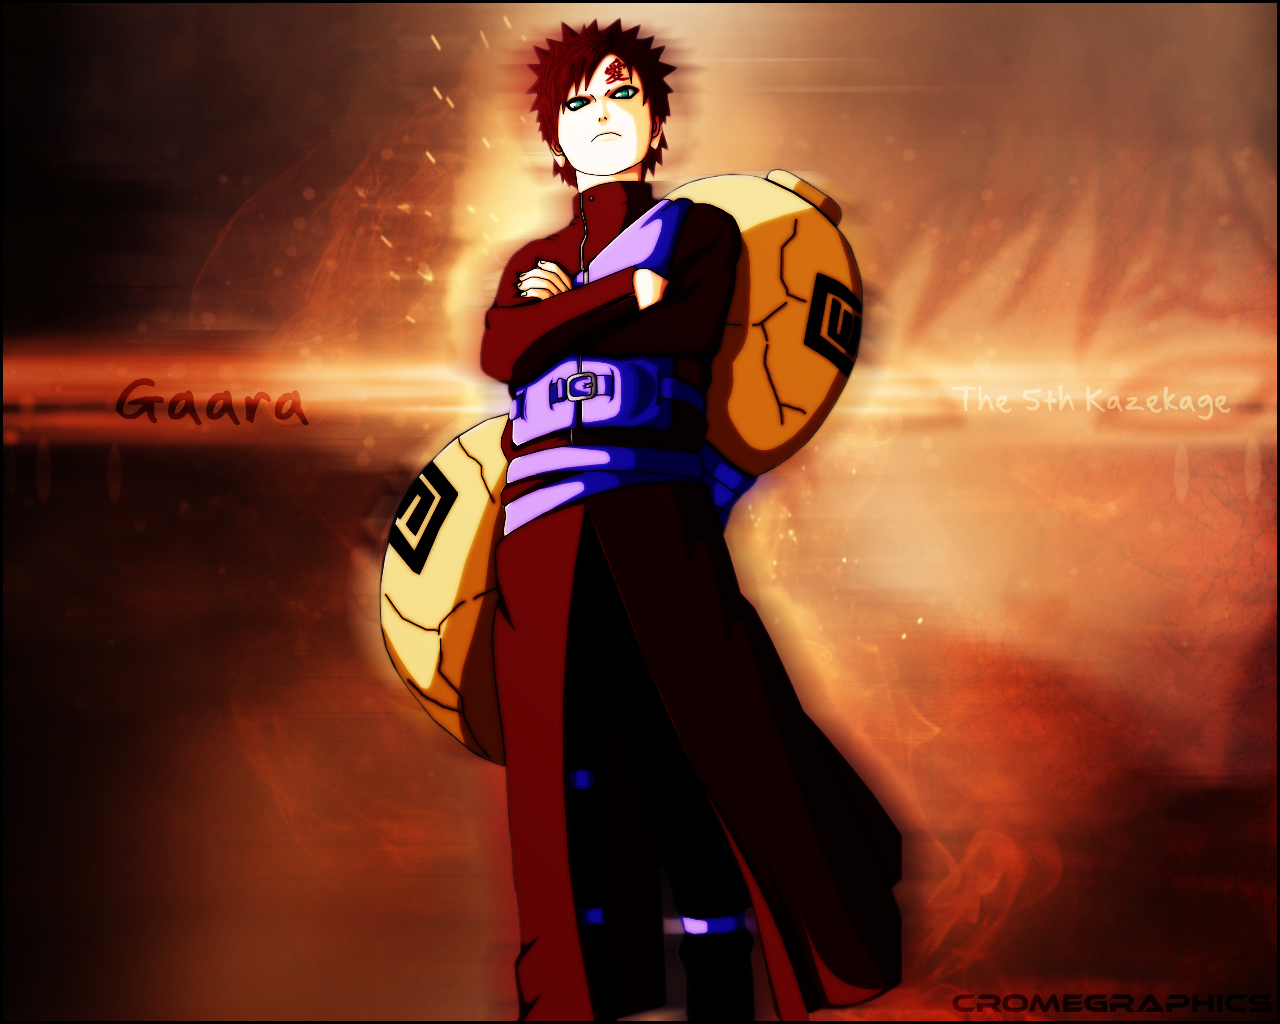 Gaara Wallpaper by alextakacs10 on DeviantArt